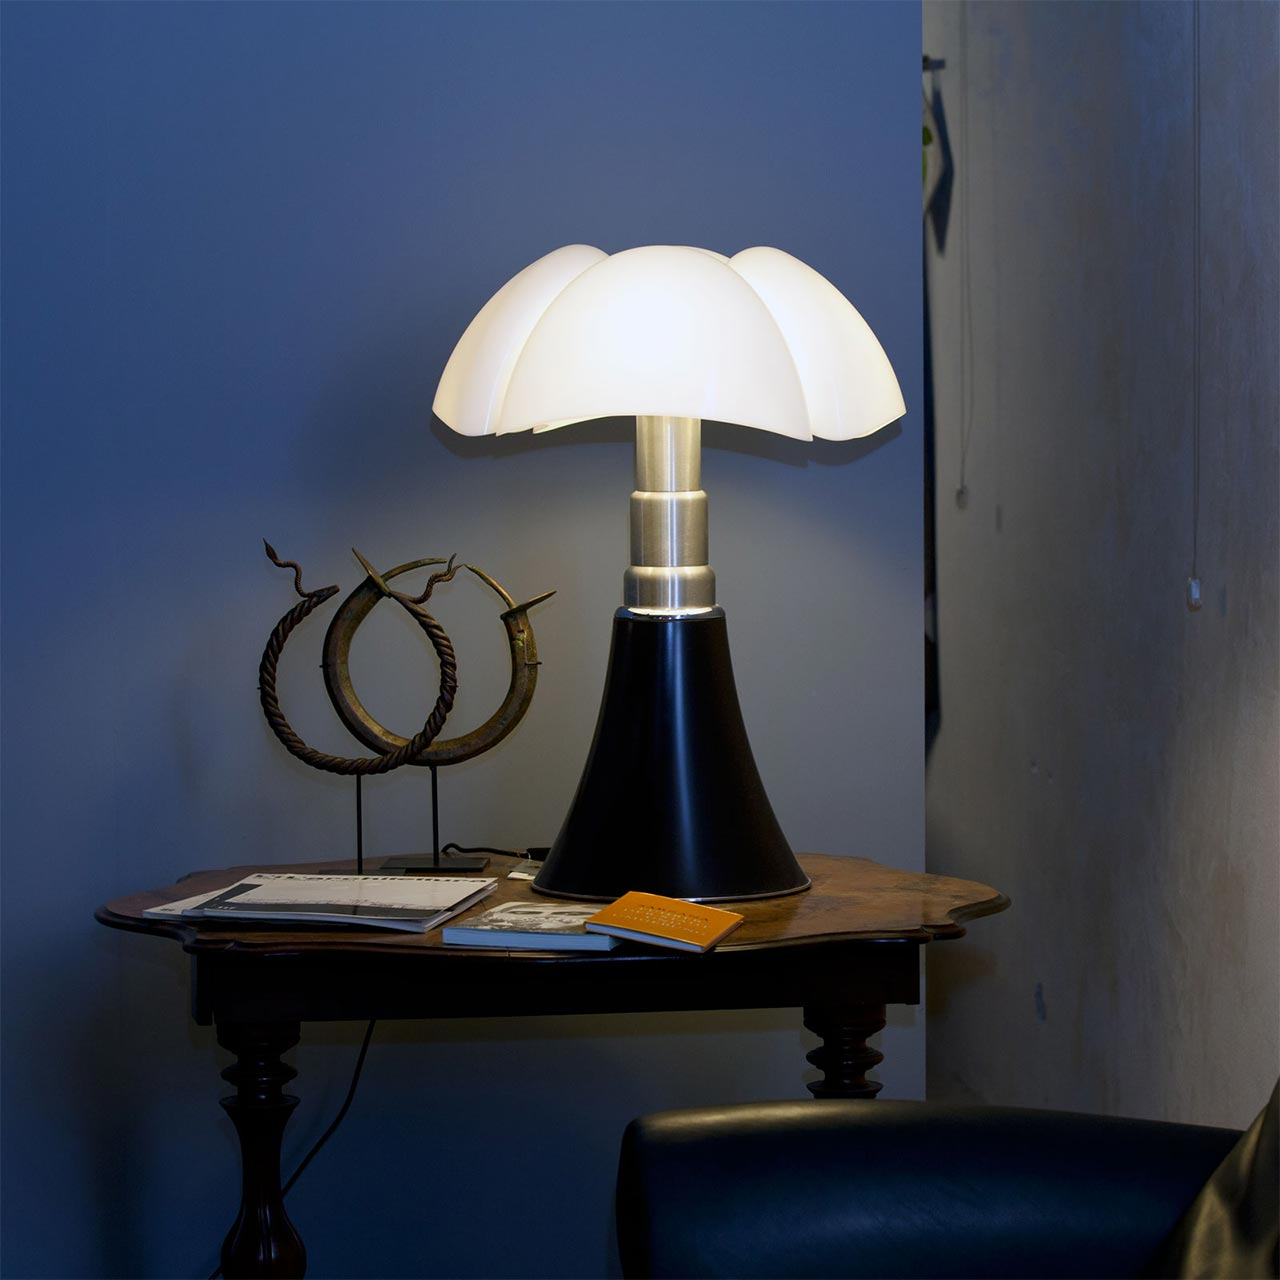 Pipistrello: the life of an iconic lamp